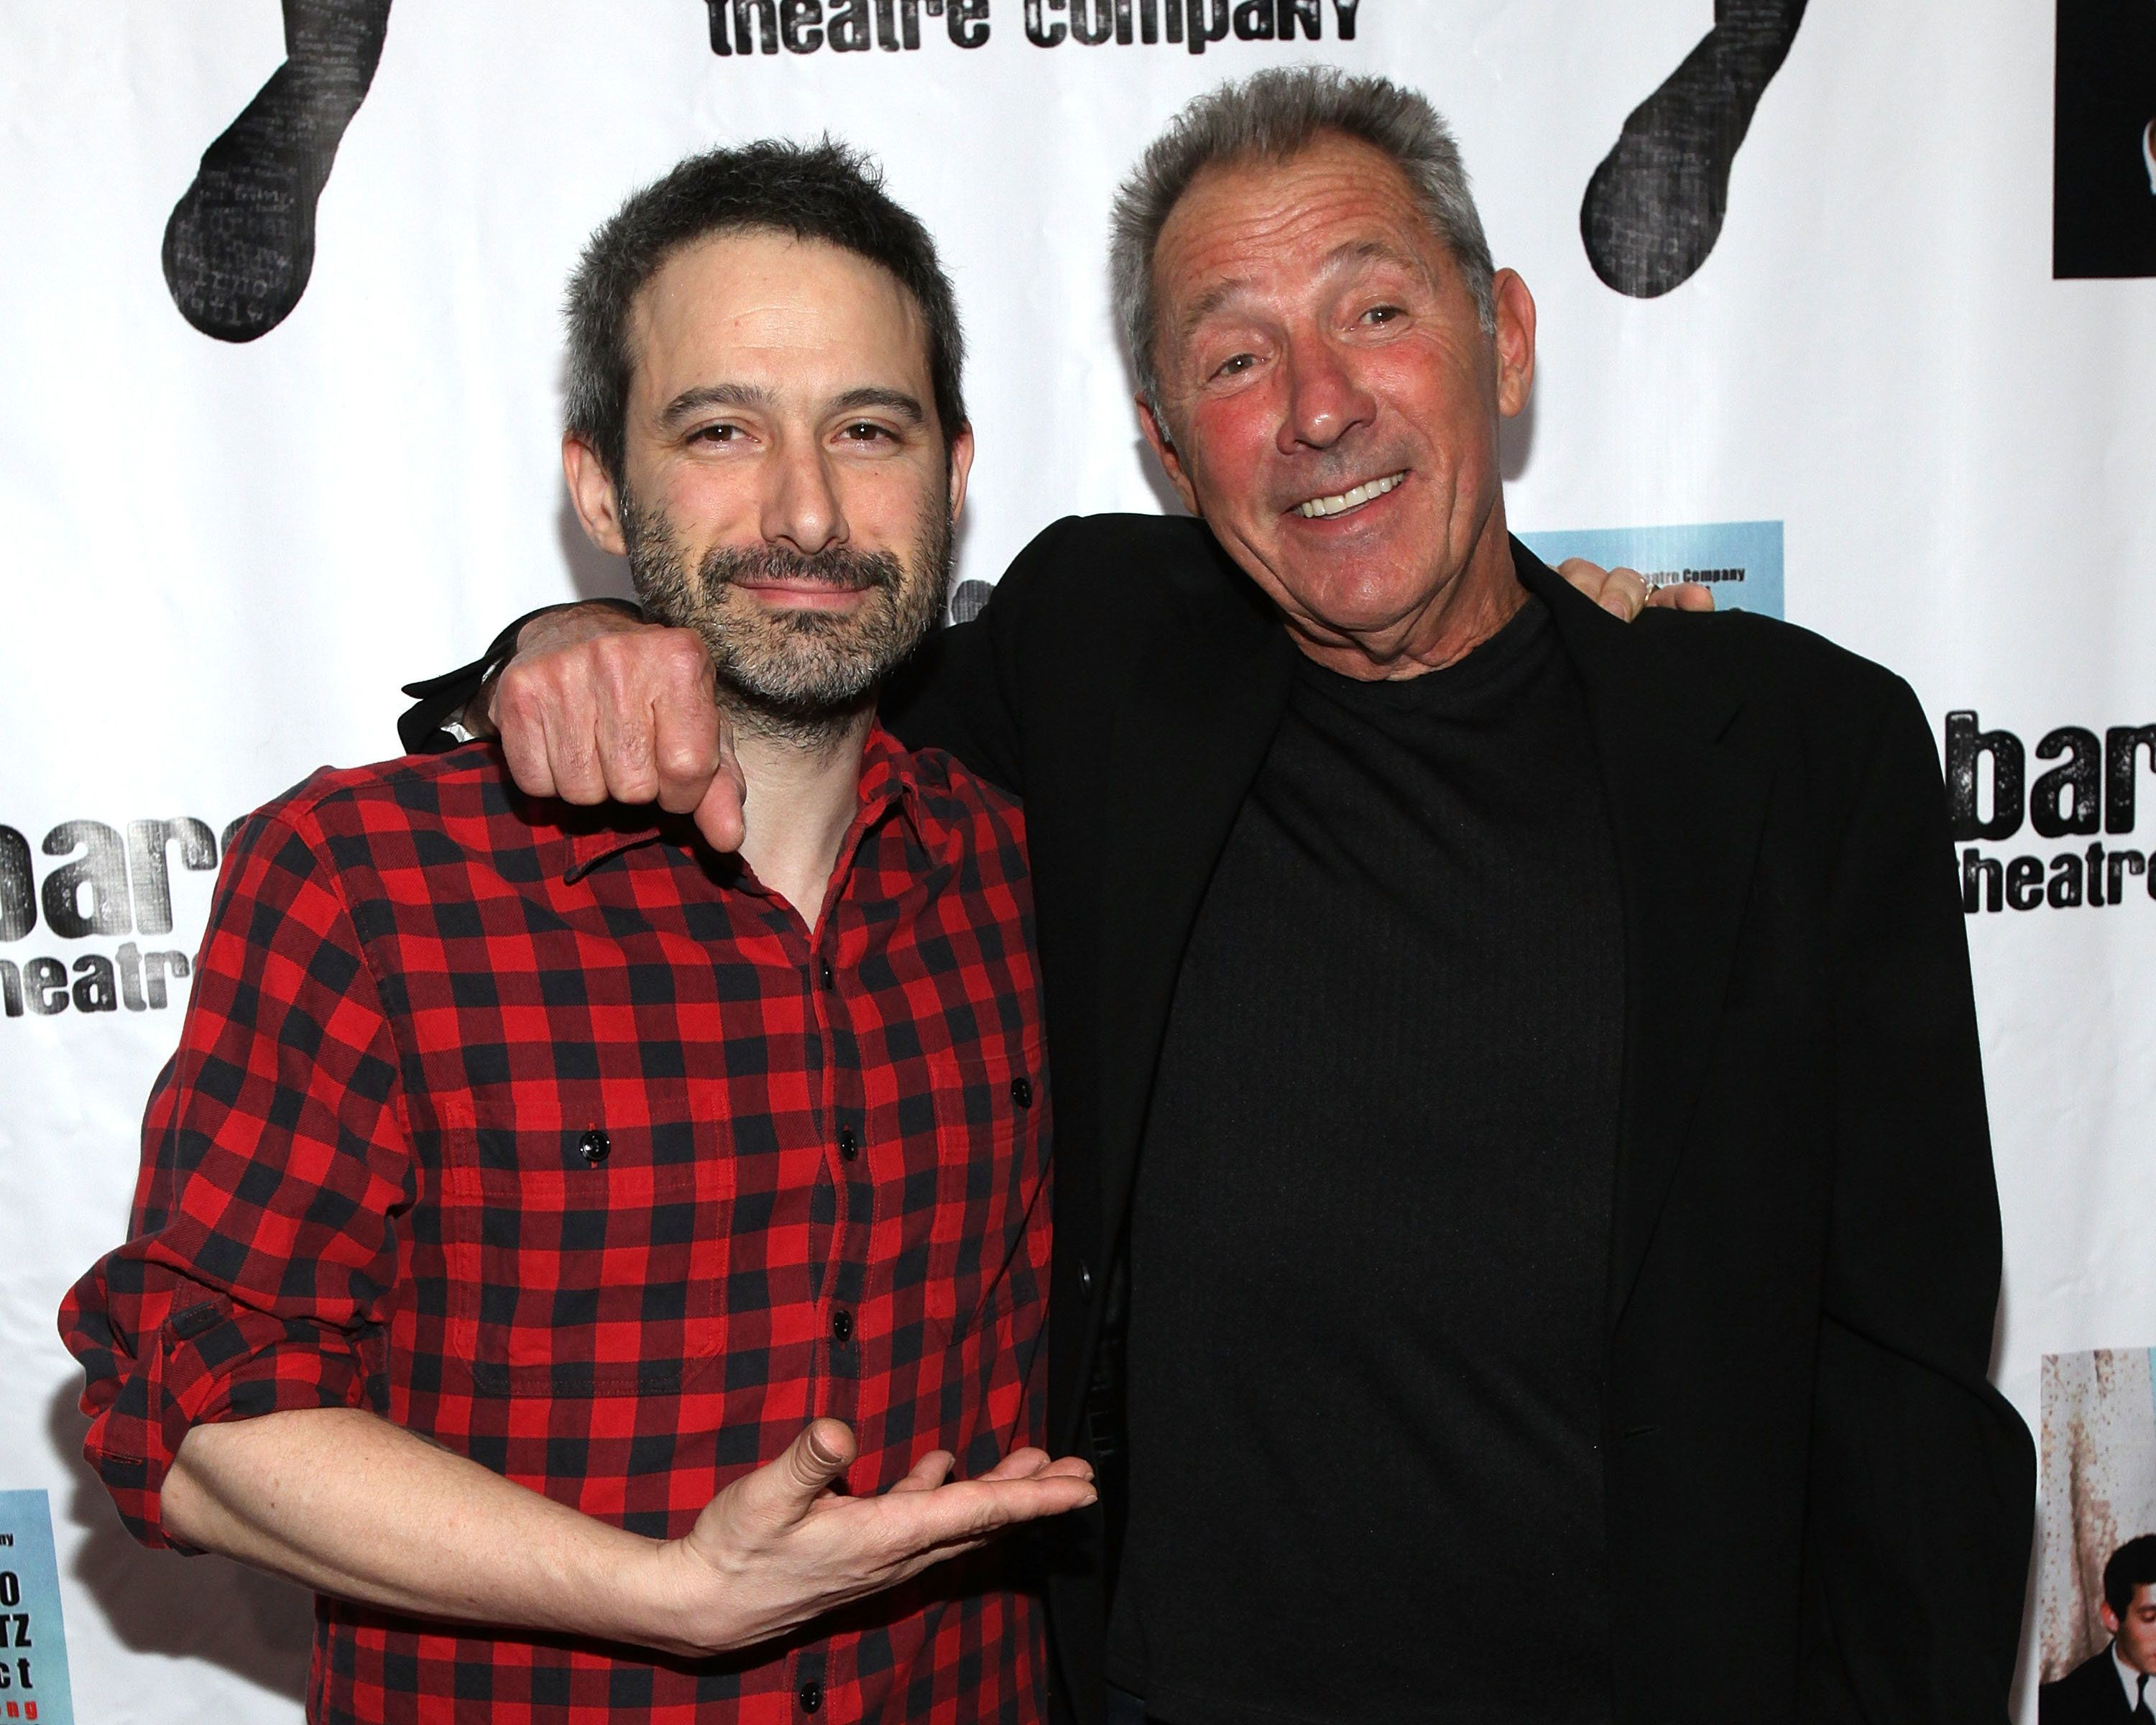 NEW YORK - MARCH 31:  Musician Adam Horovitz and playwright Israel Horovitz attend the Barefoot Theatre Company's 70/70 Project honoring playwright Israel Horovitz at the Bleeker Street Theatre on March 31, 2010 in New York City.  (Photo by Ben Hider/Getty Images)